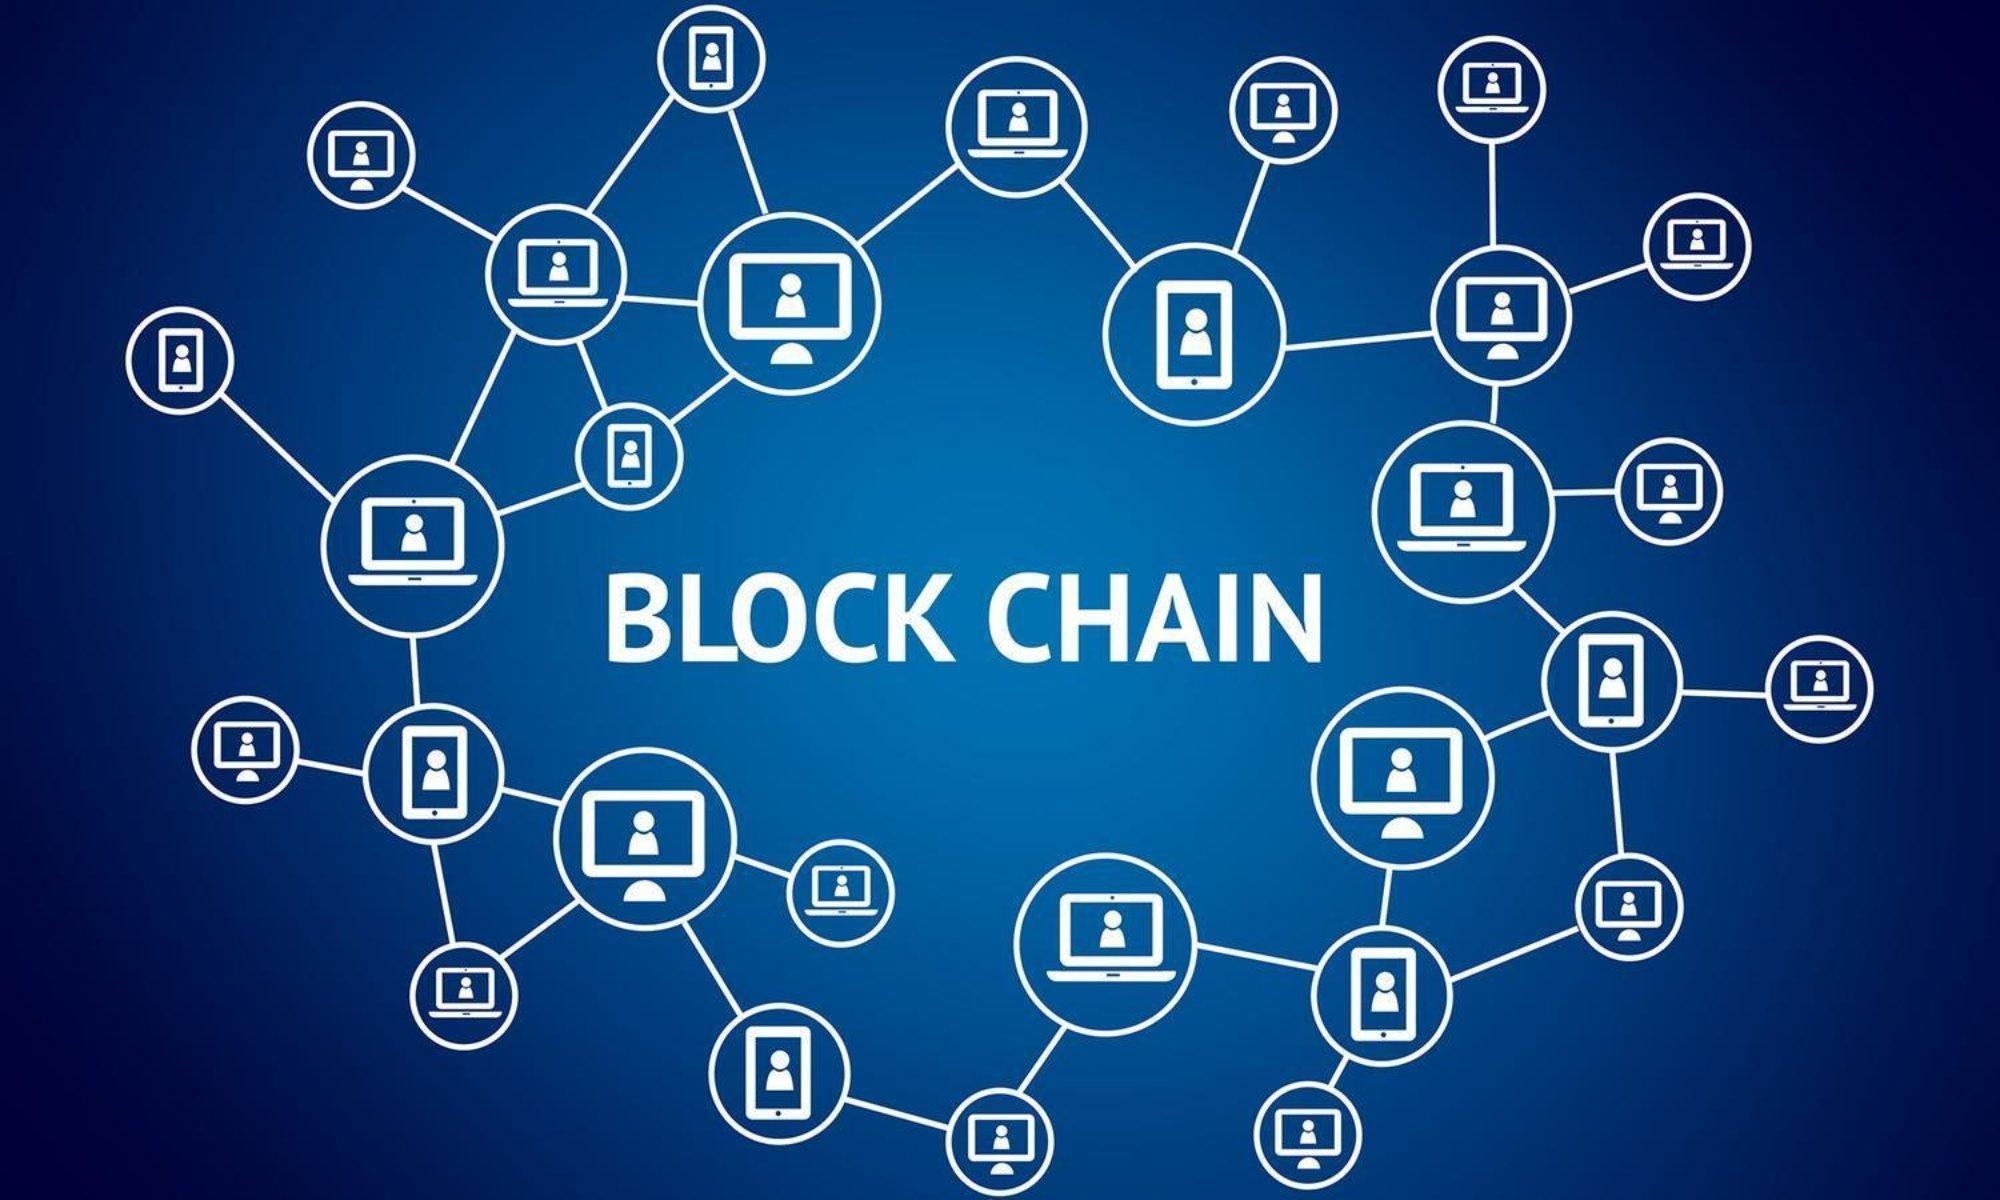 Greensboro Blockchain Bootcamp for Beginners [Apr 17 - May 10,2018] Beginners Blockchain Training | Bitcoin Training | IT Training | Ethereum | Solidity | Hyperledger | Distributed Ledger | Smart Contracts | Cryptocurrency | Cryptocurrencies